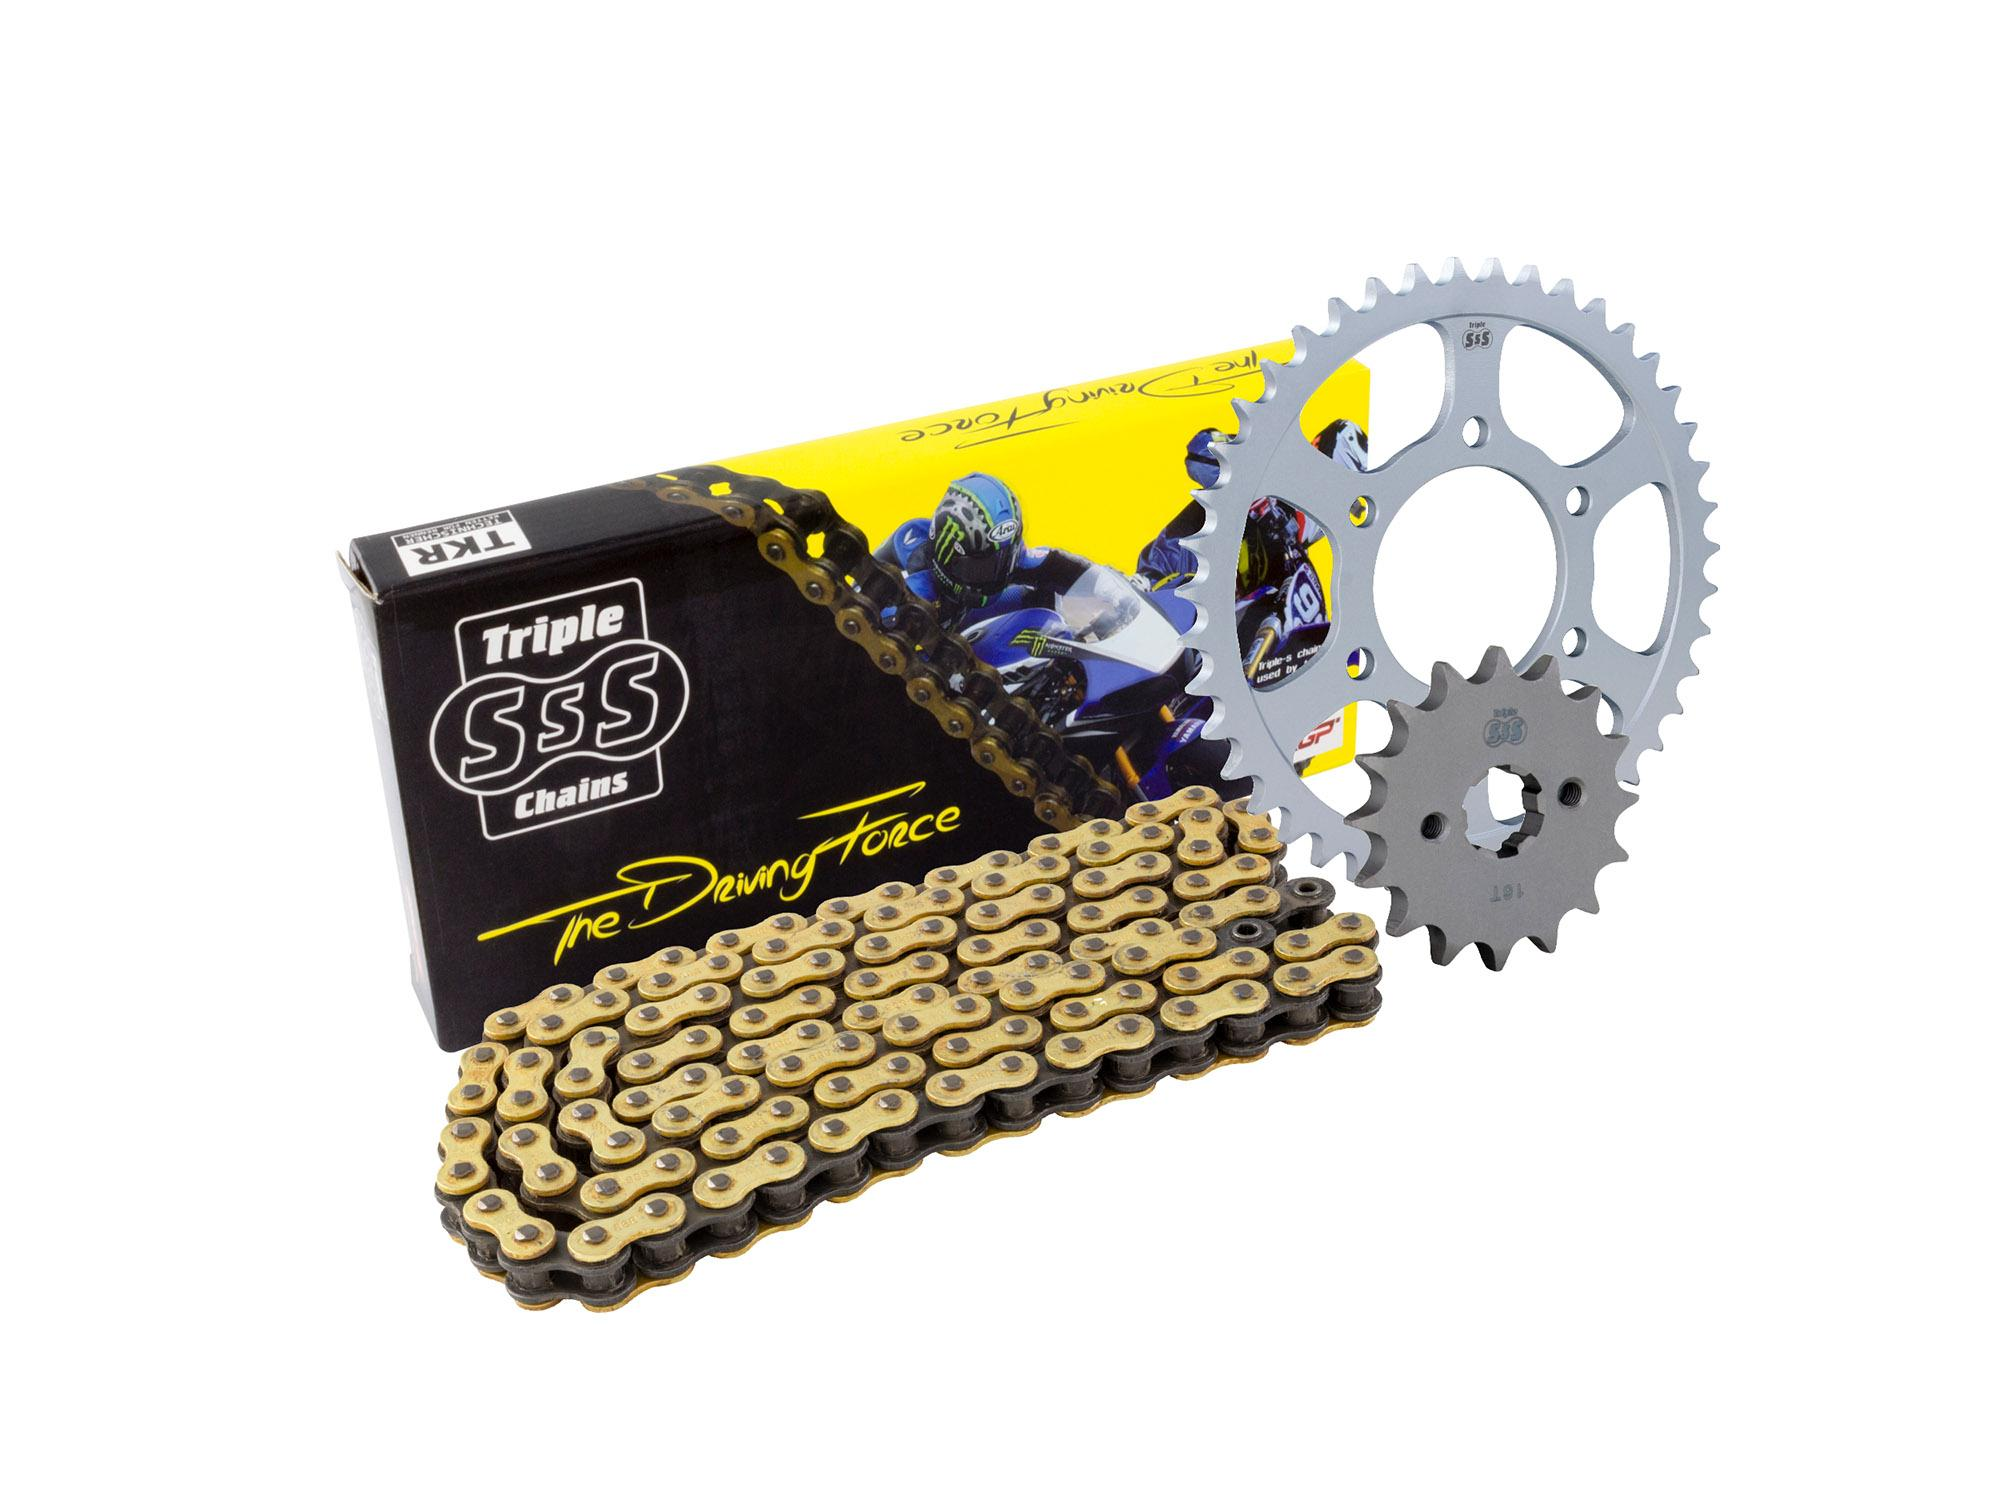 Suzuki GSX-R750 WT/WV SRAD 96-97 Chain & Sprocket Kit: 15T Front, 43T Rear, HD O-Ring Gold Chain 530H 108 Link